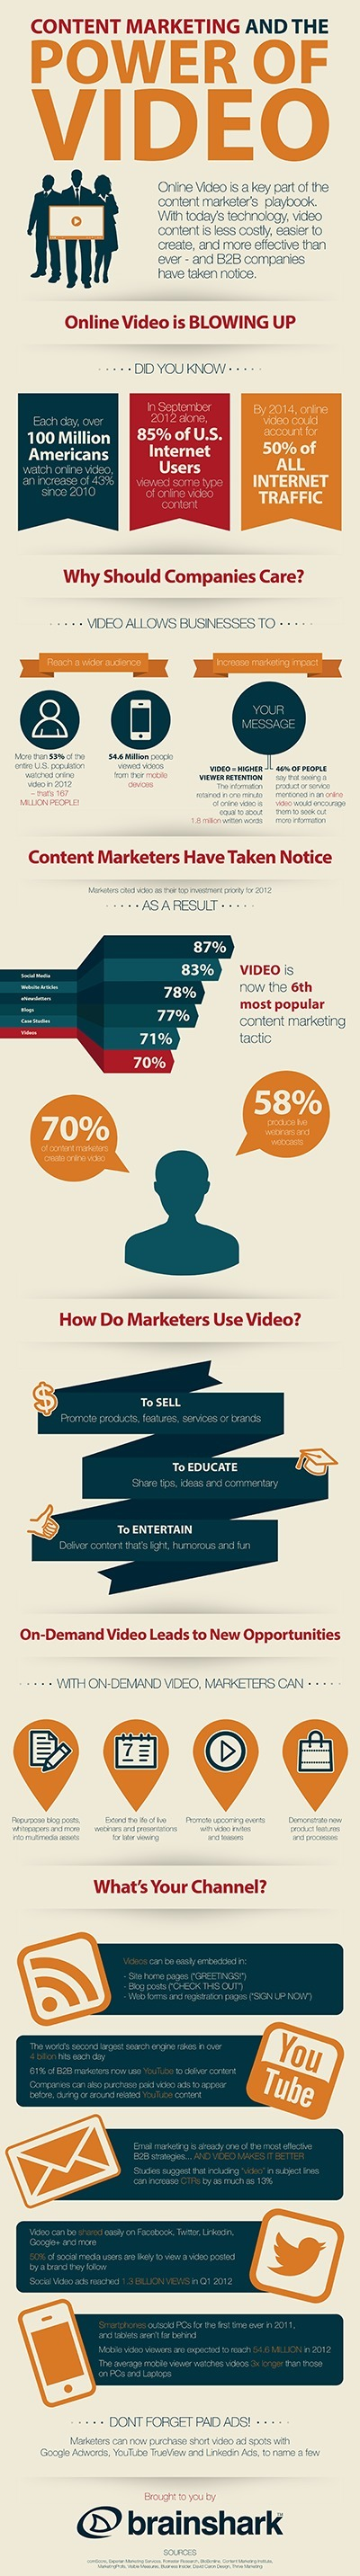 Insights on Using Video in Social Media Marketing | Marketing Planning and Strategy | Scoop.it